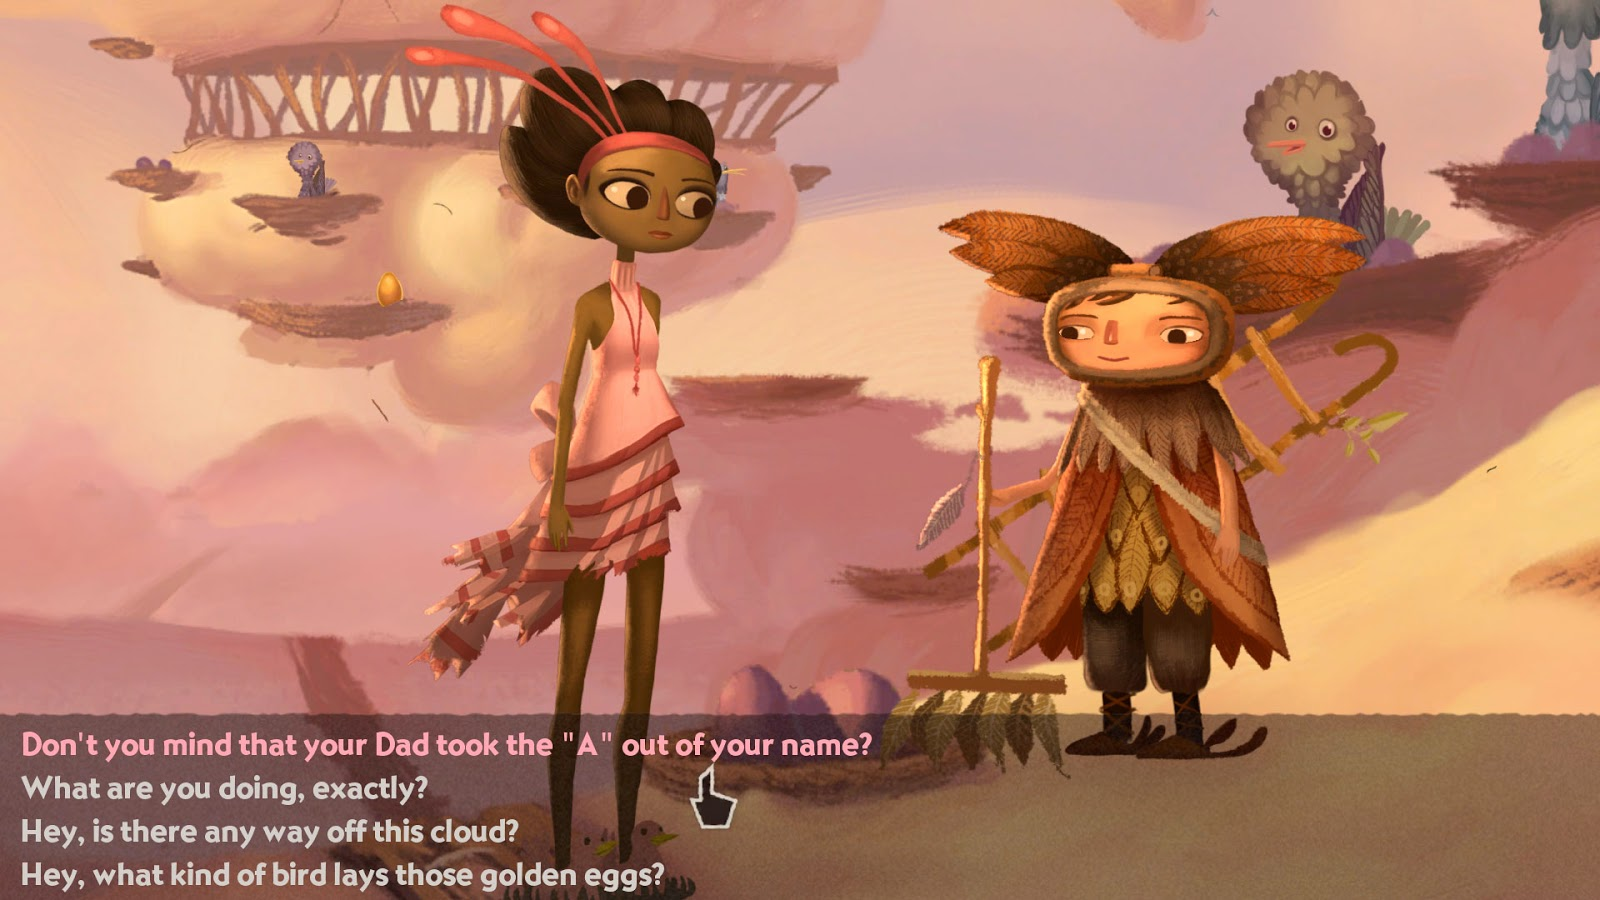 Broken Age Act 1 Vella in dialogue about cloud shoes